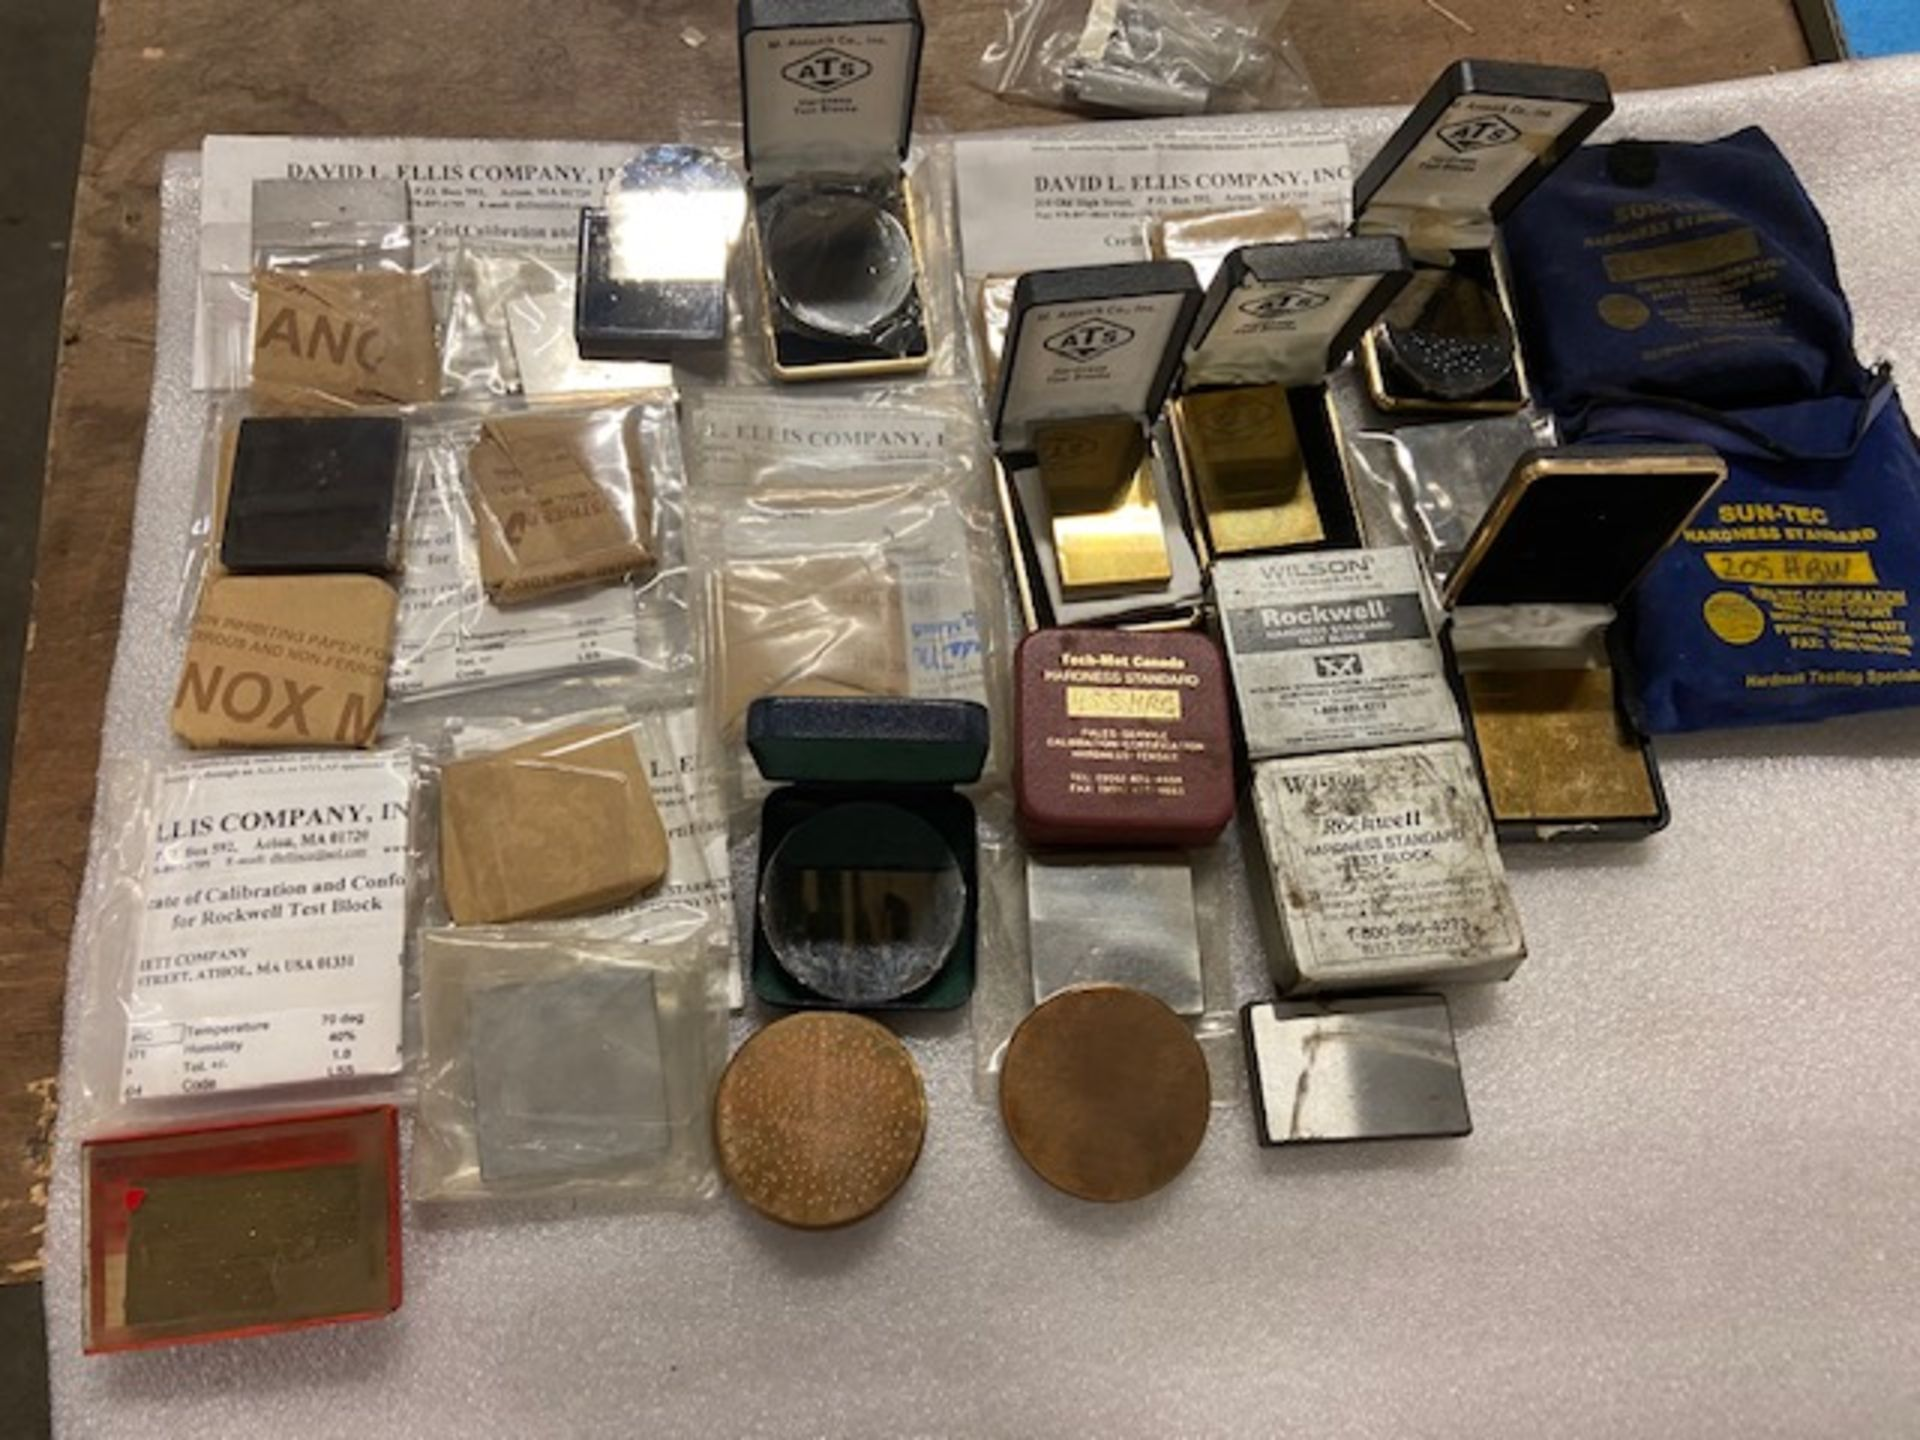 Large Lot of Hardness Tester Test Blocks - many with Certificates ATS, Sun-Tec, Wilson